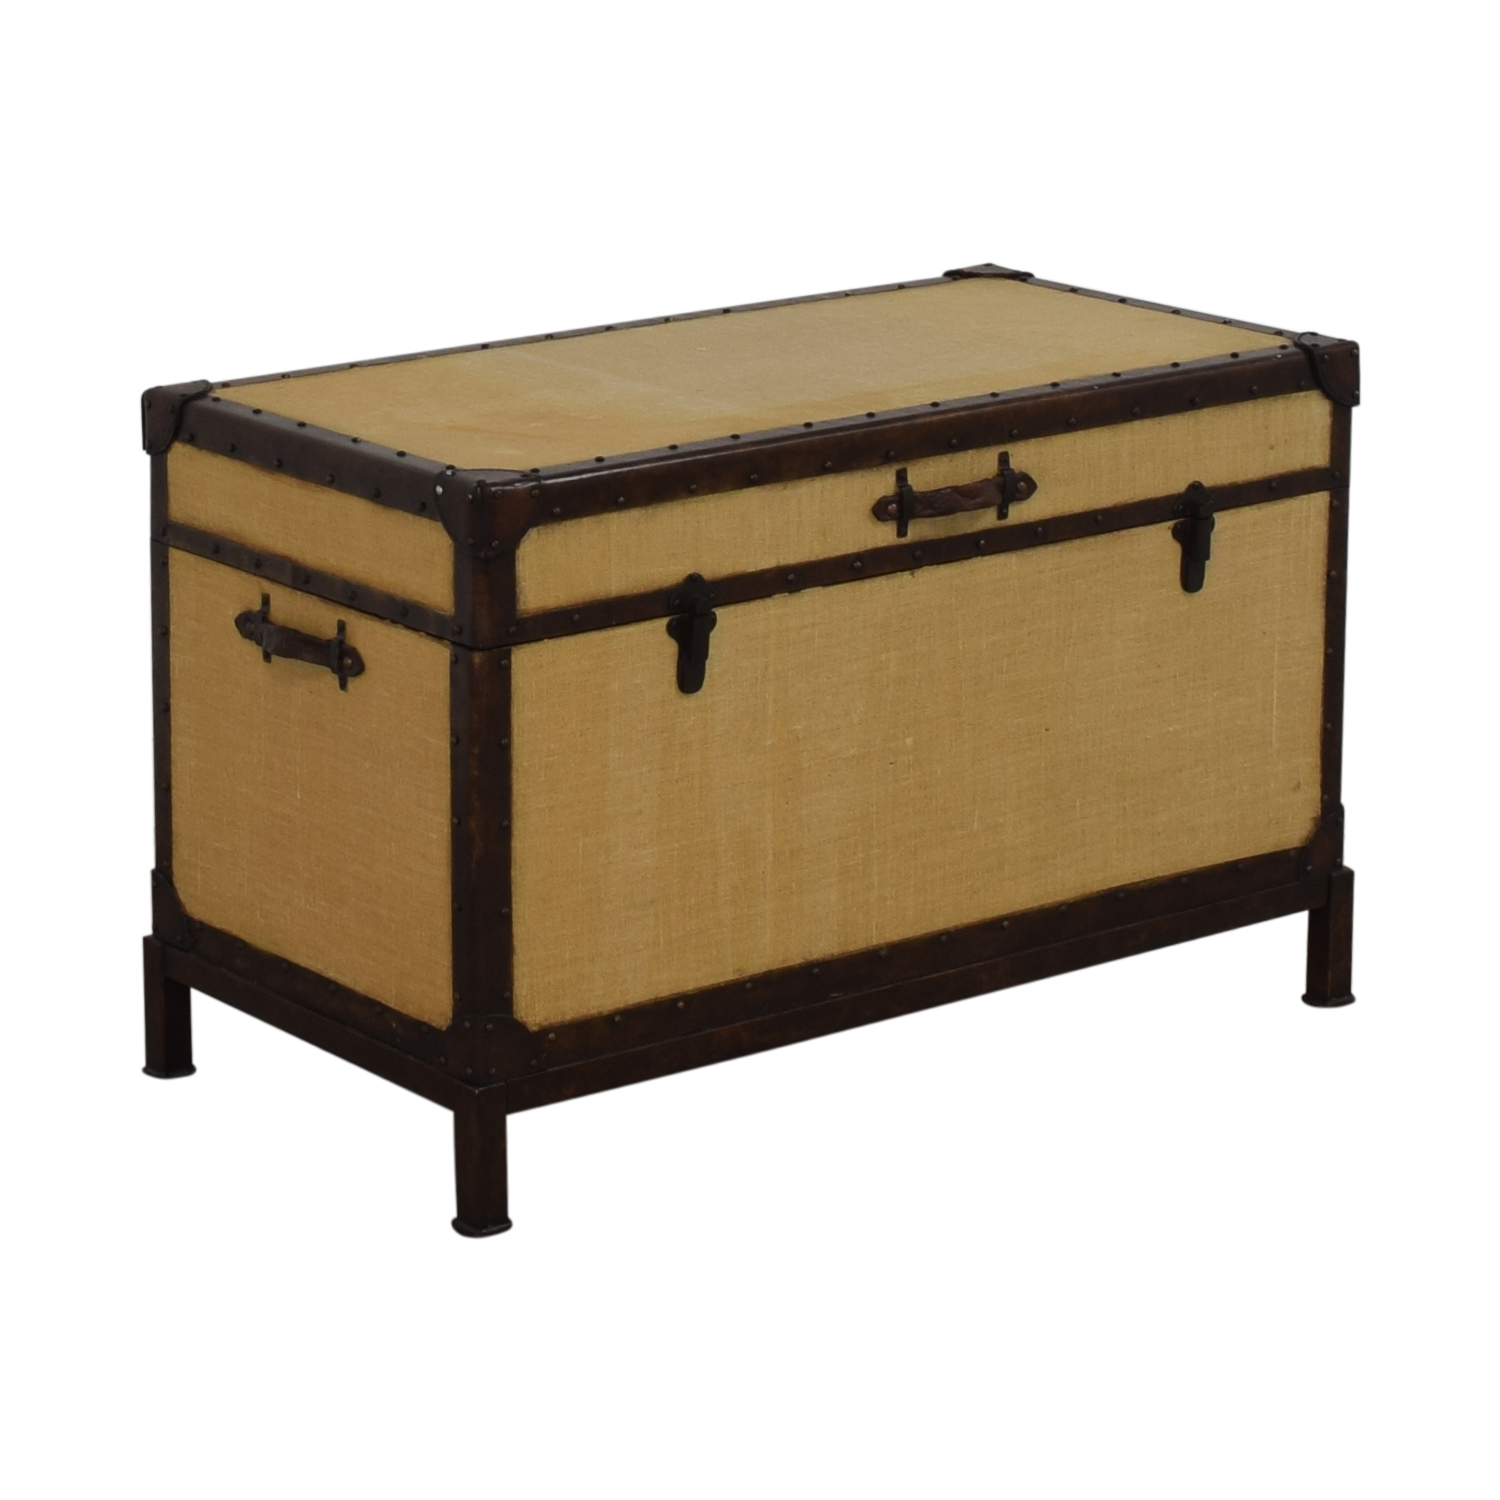 Pottery Barn Pottery Barn Redford End of Bed Trunk dimensions